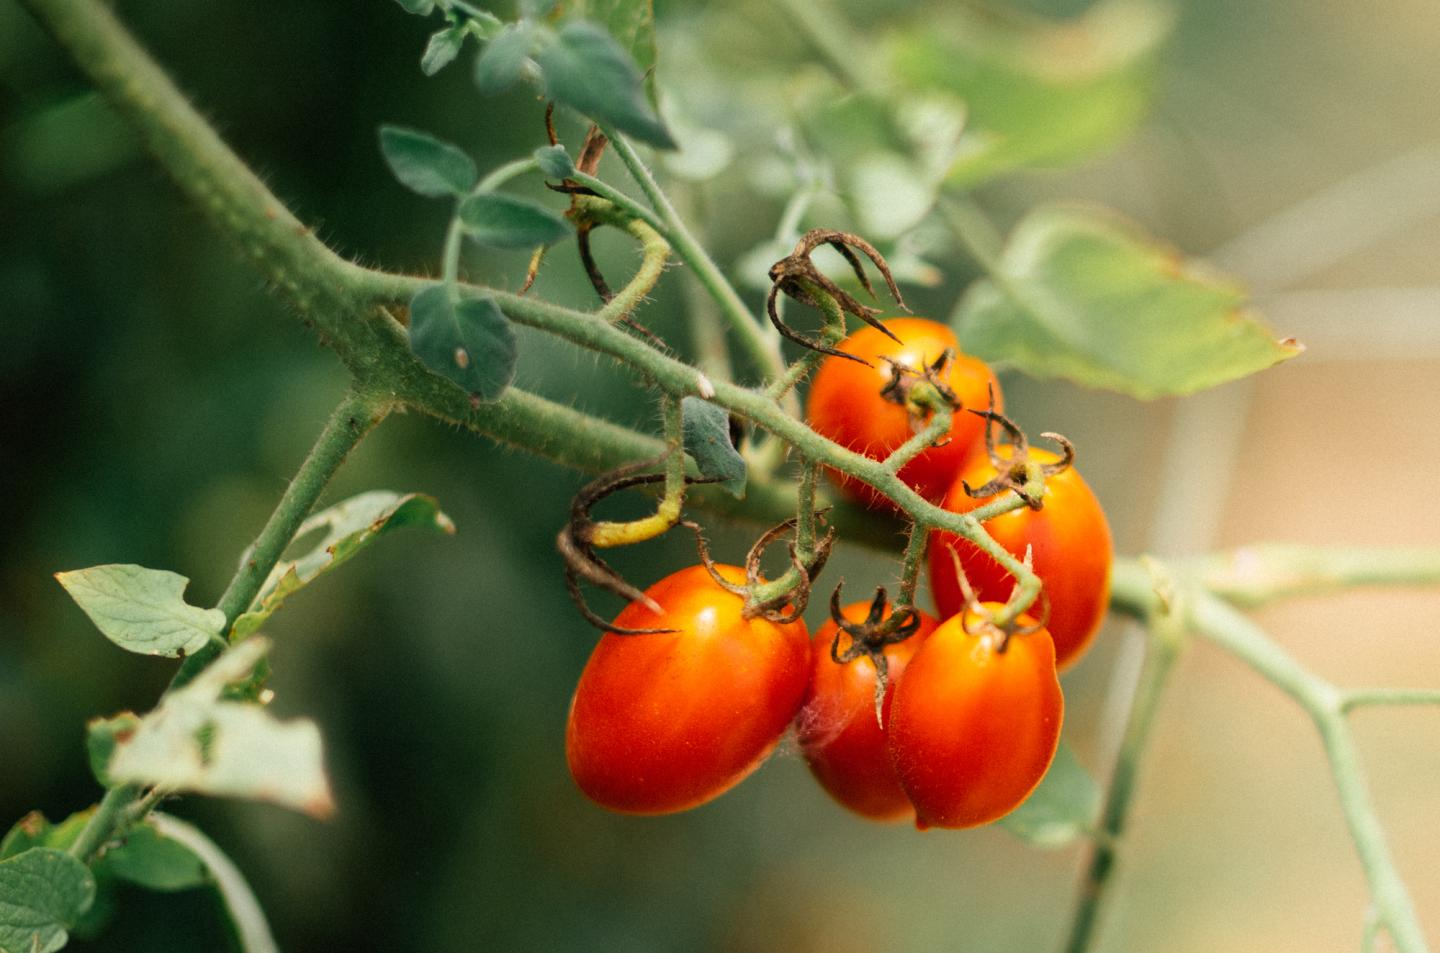 Red tomatoes growing on a green vine.